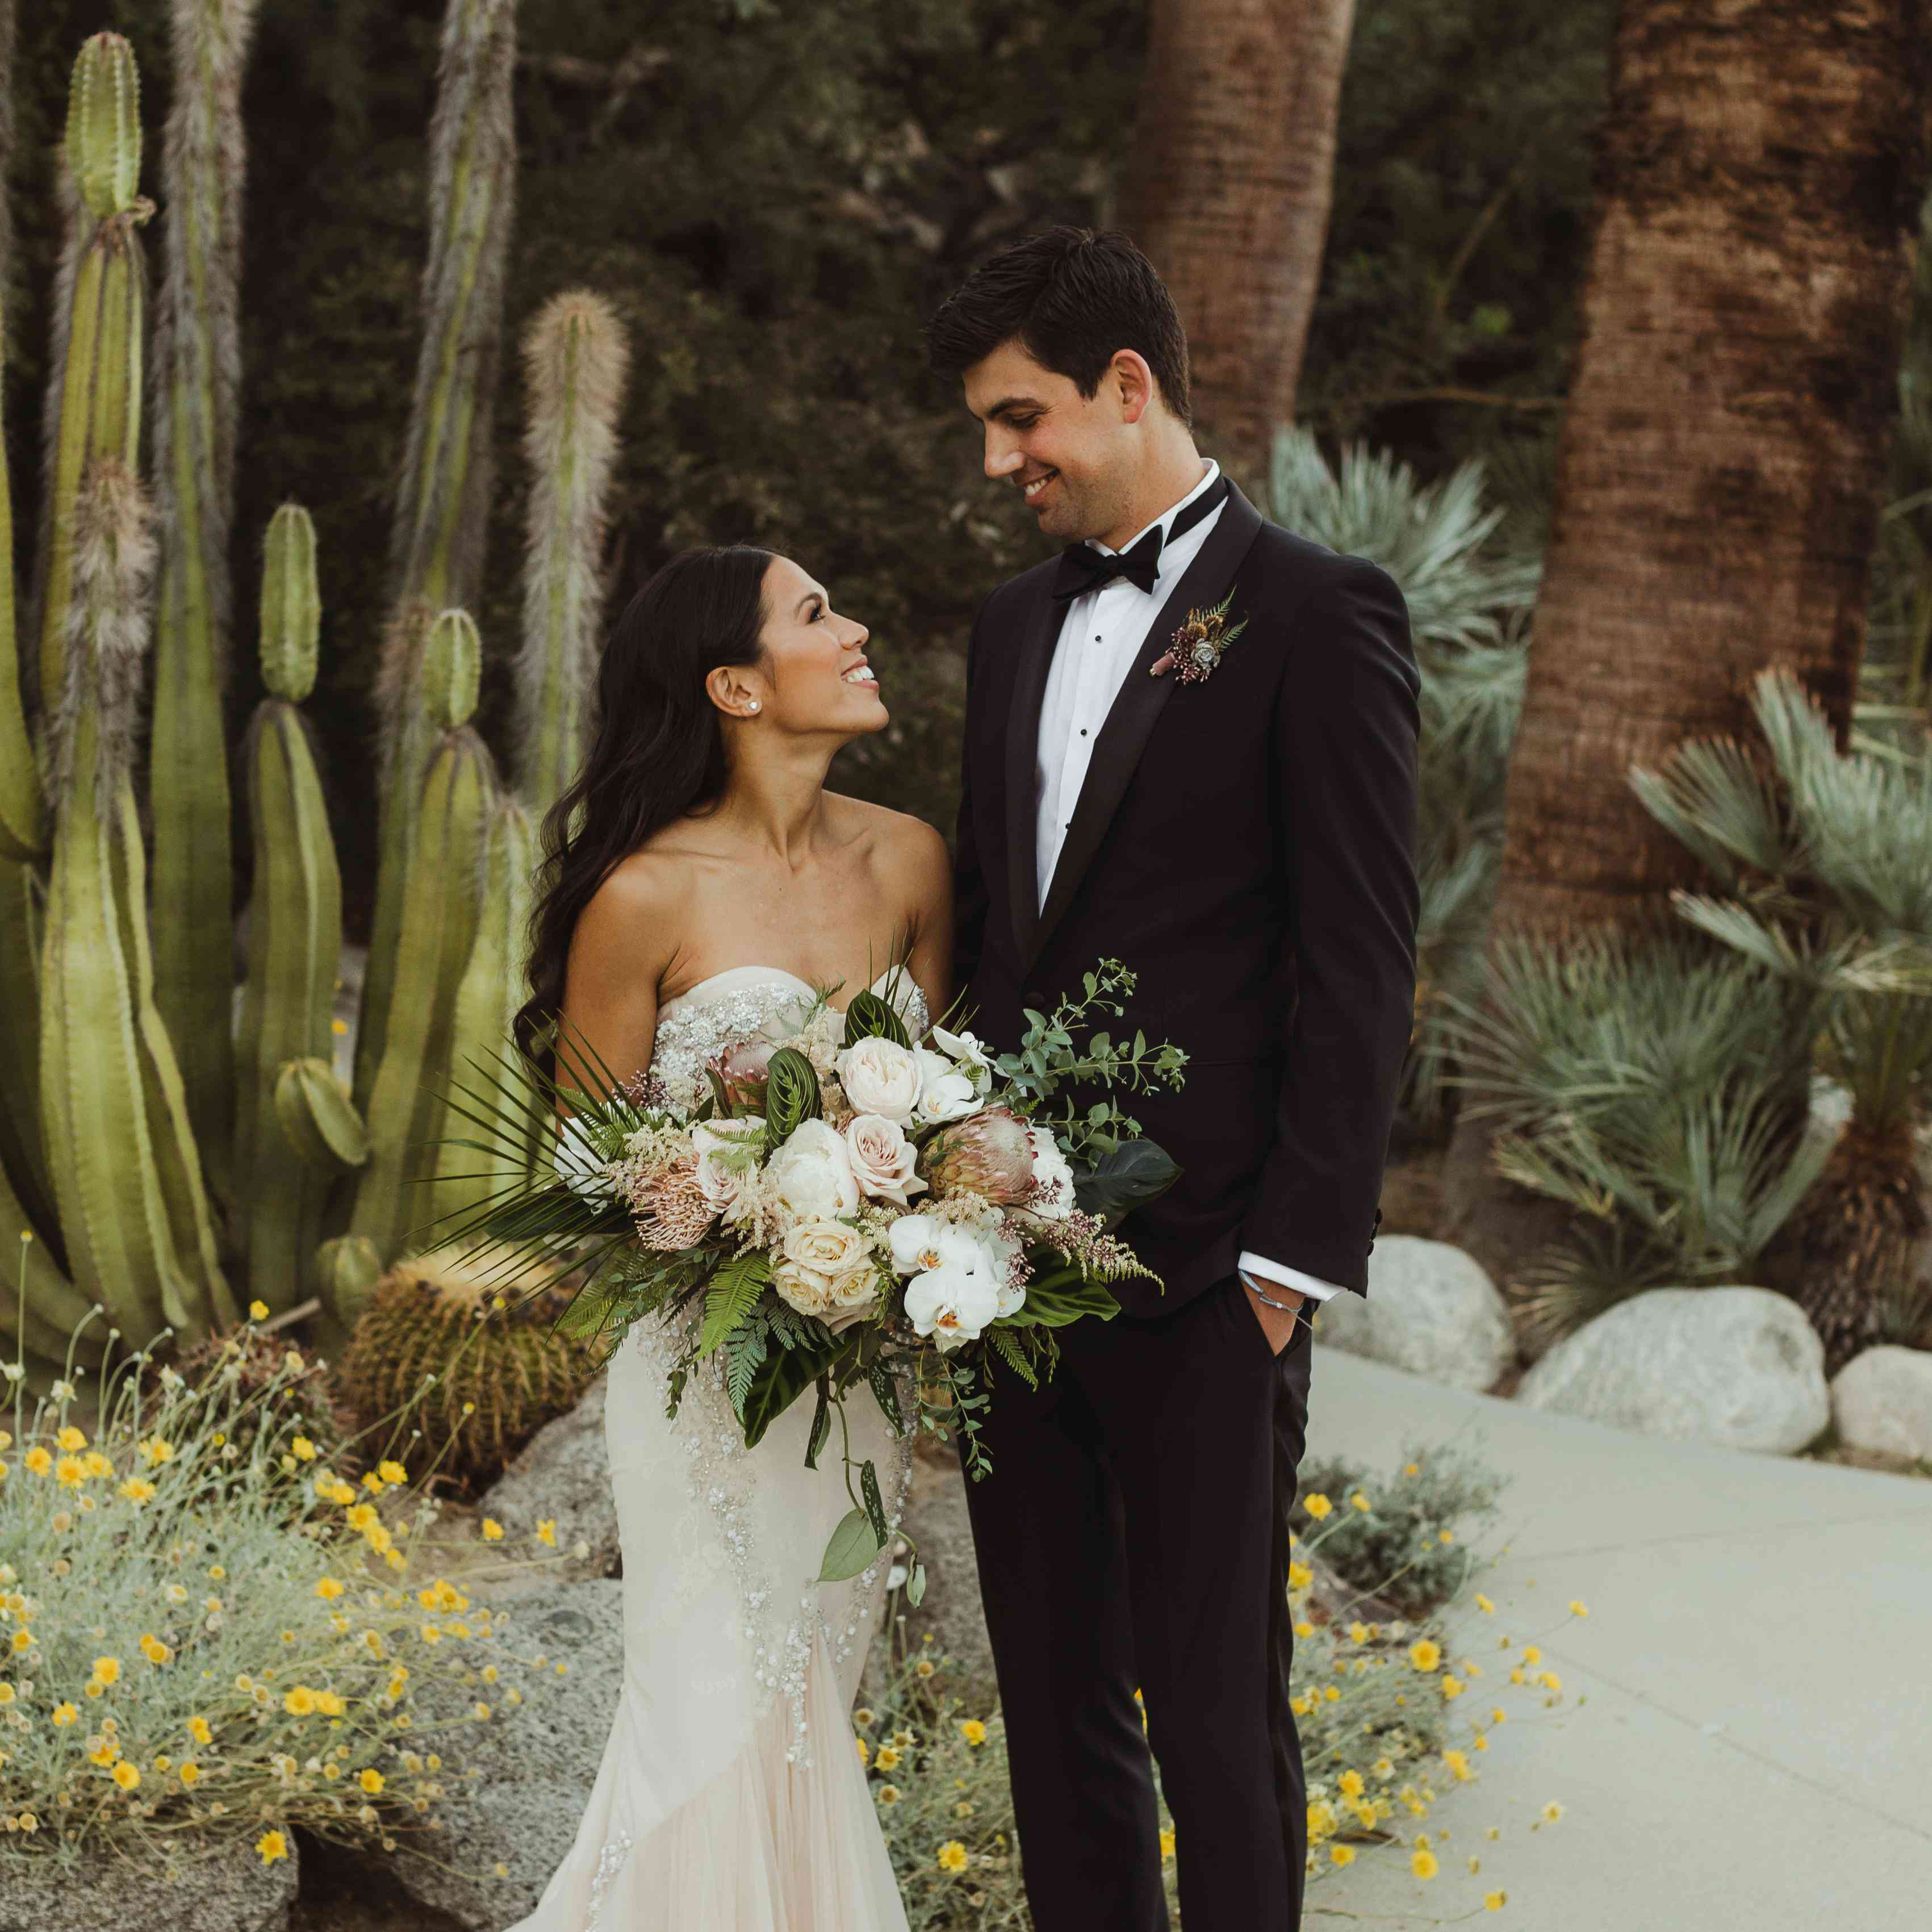 A Palm Springs Wedding Inspired By Whitney Port's Big Day